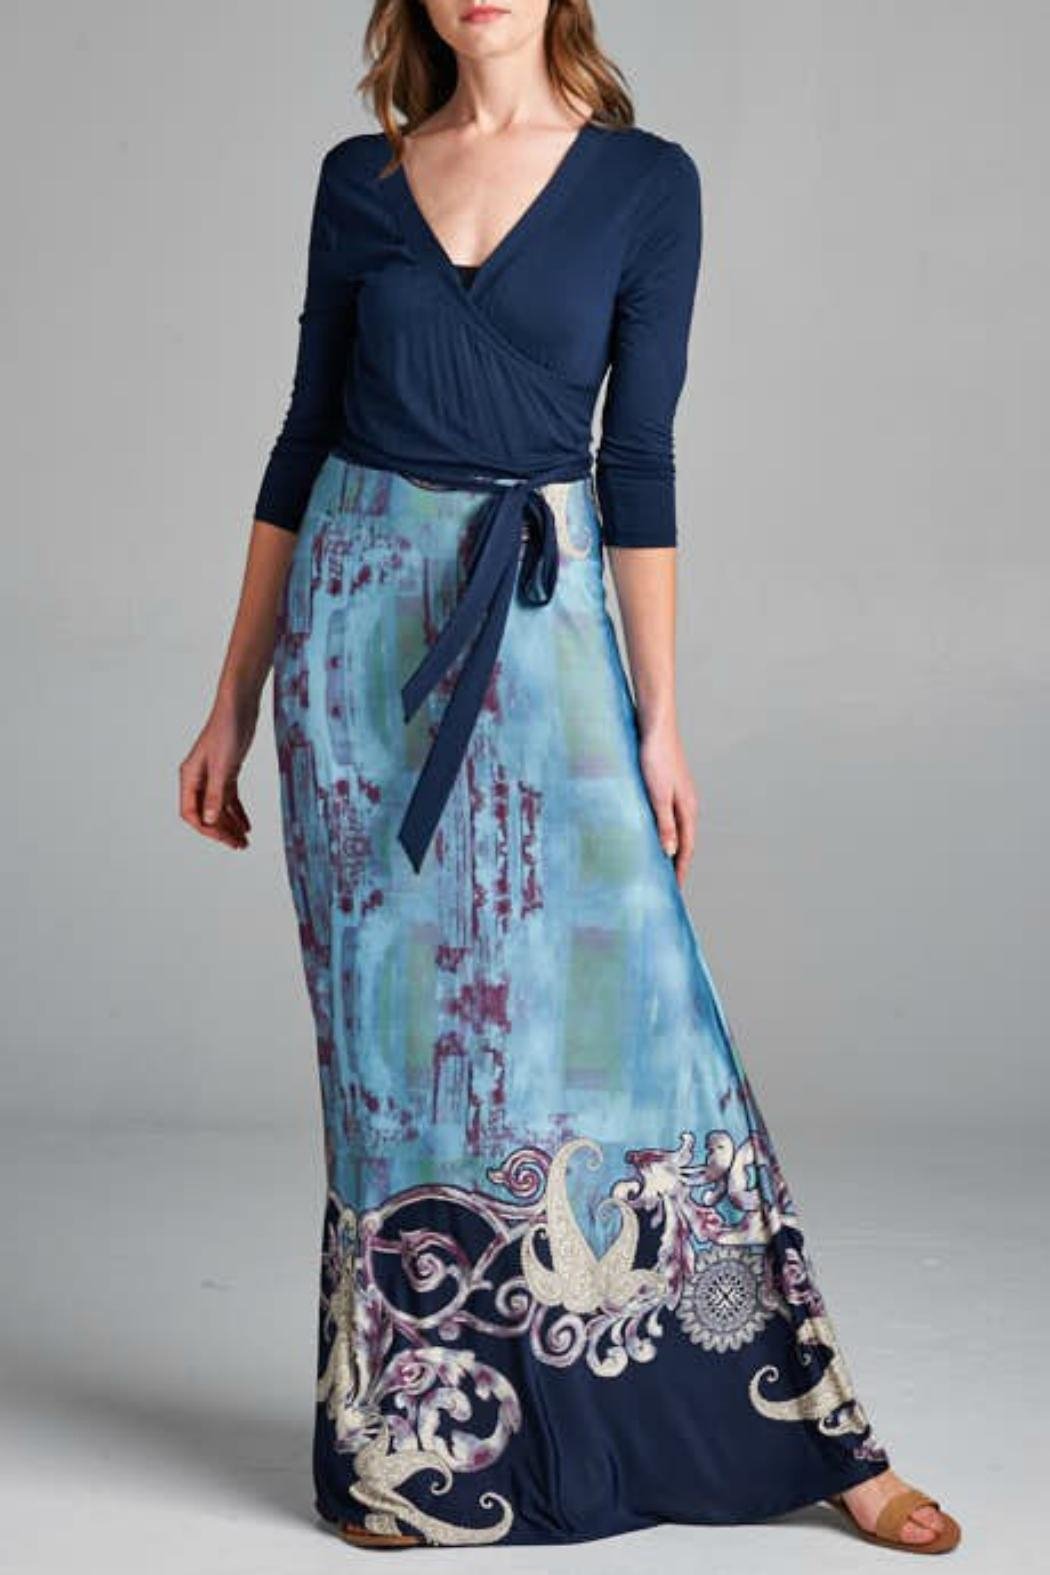 c1acc036c8b tua Blue-Paisley Faux-Wrap Maxi-Dress from Alaska by Apricot Lane ...